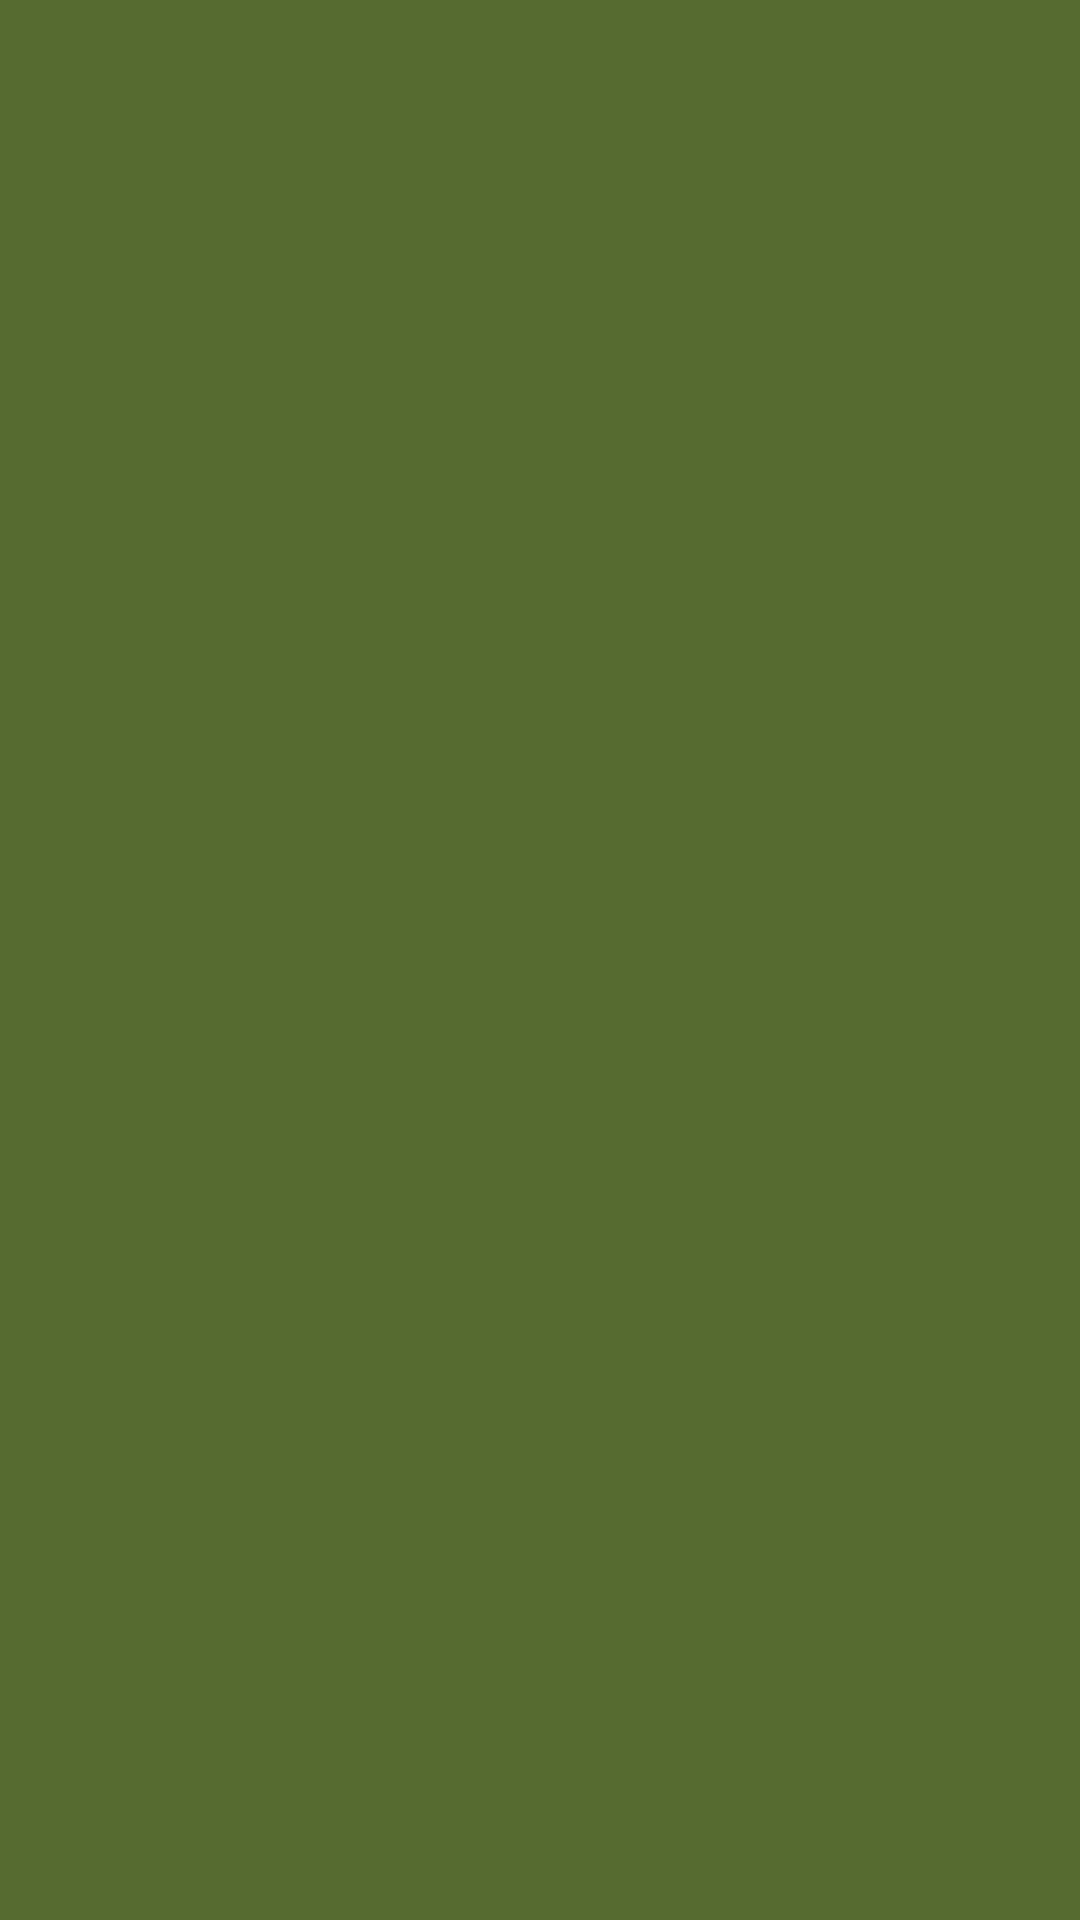 1080x1920 Dark Olive Green Solid Color Background